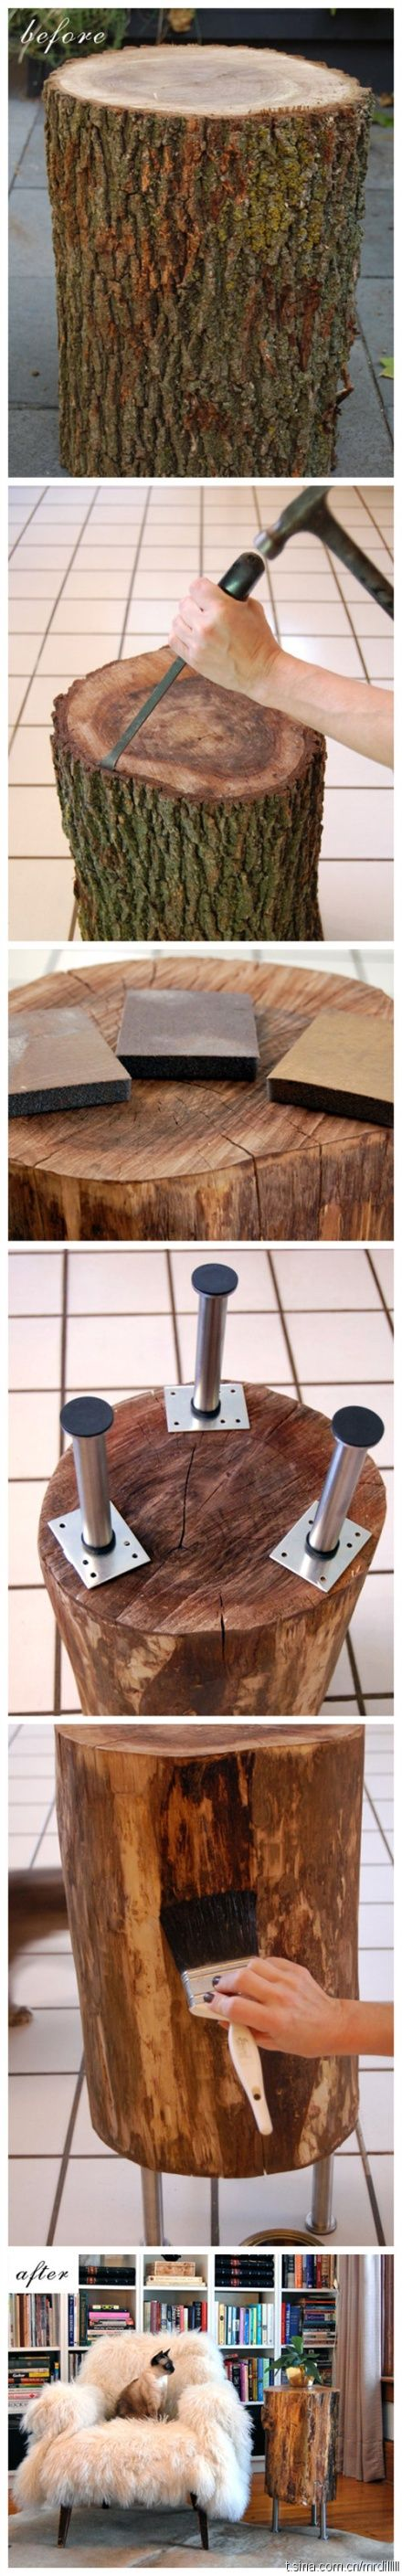 best recycled furniture images on pinterest